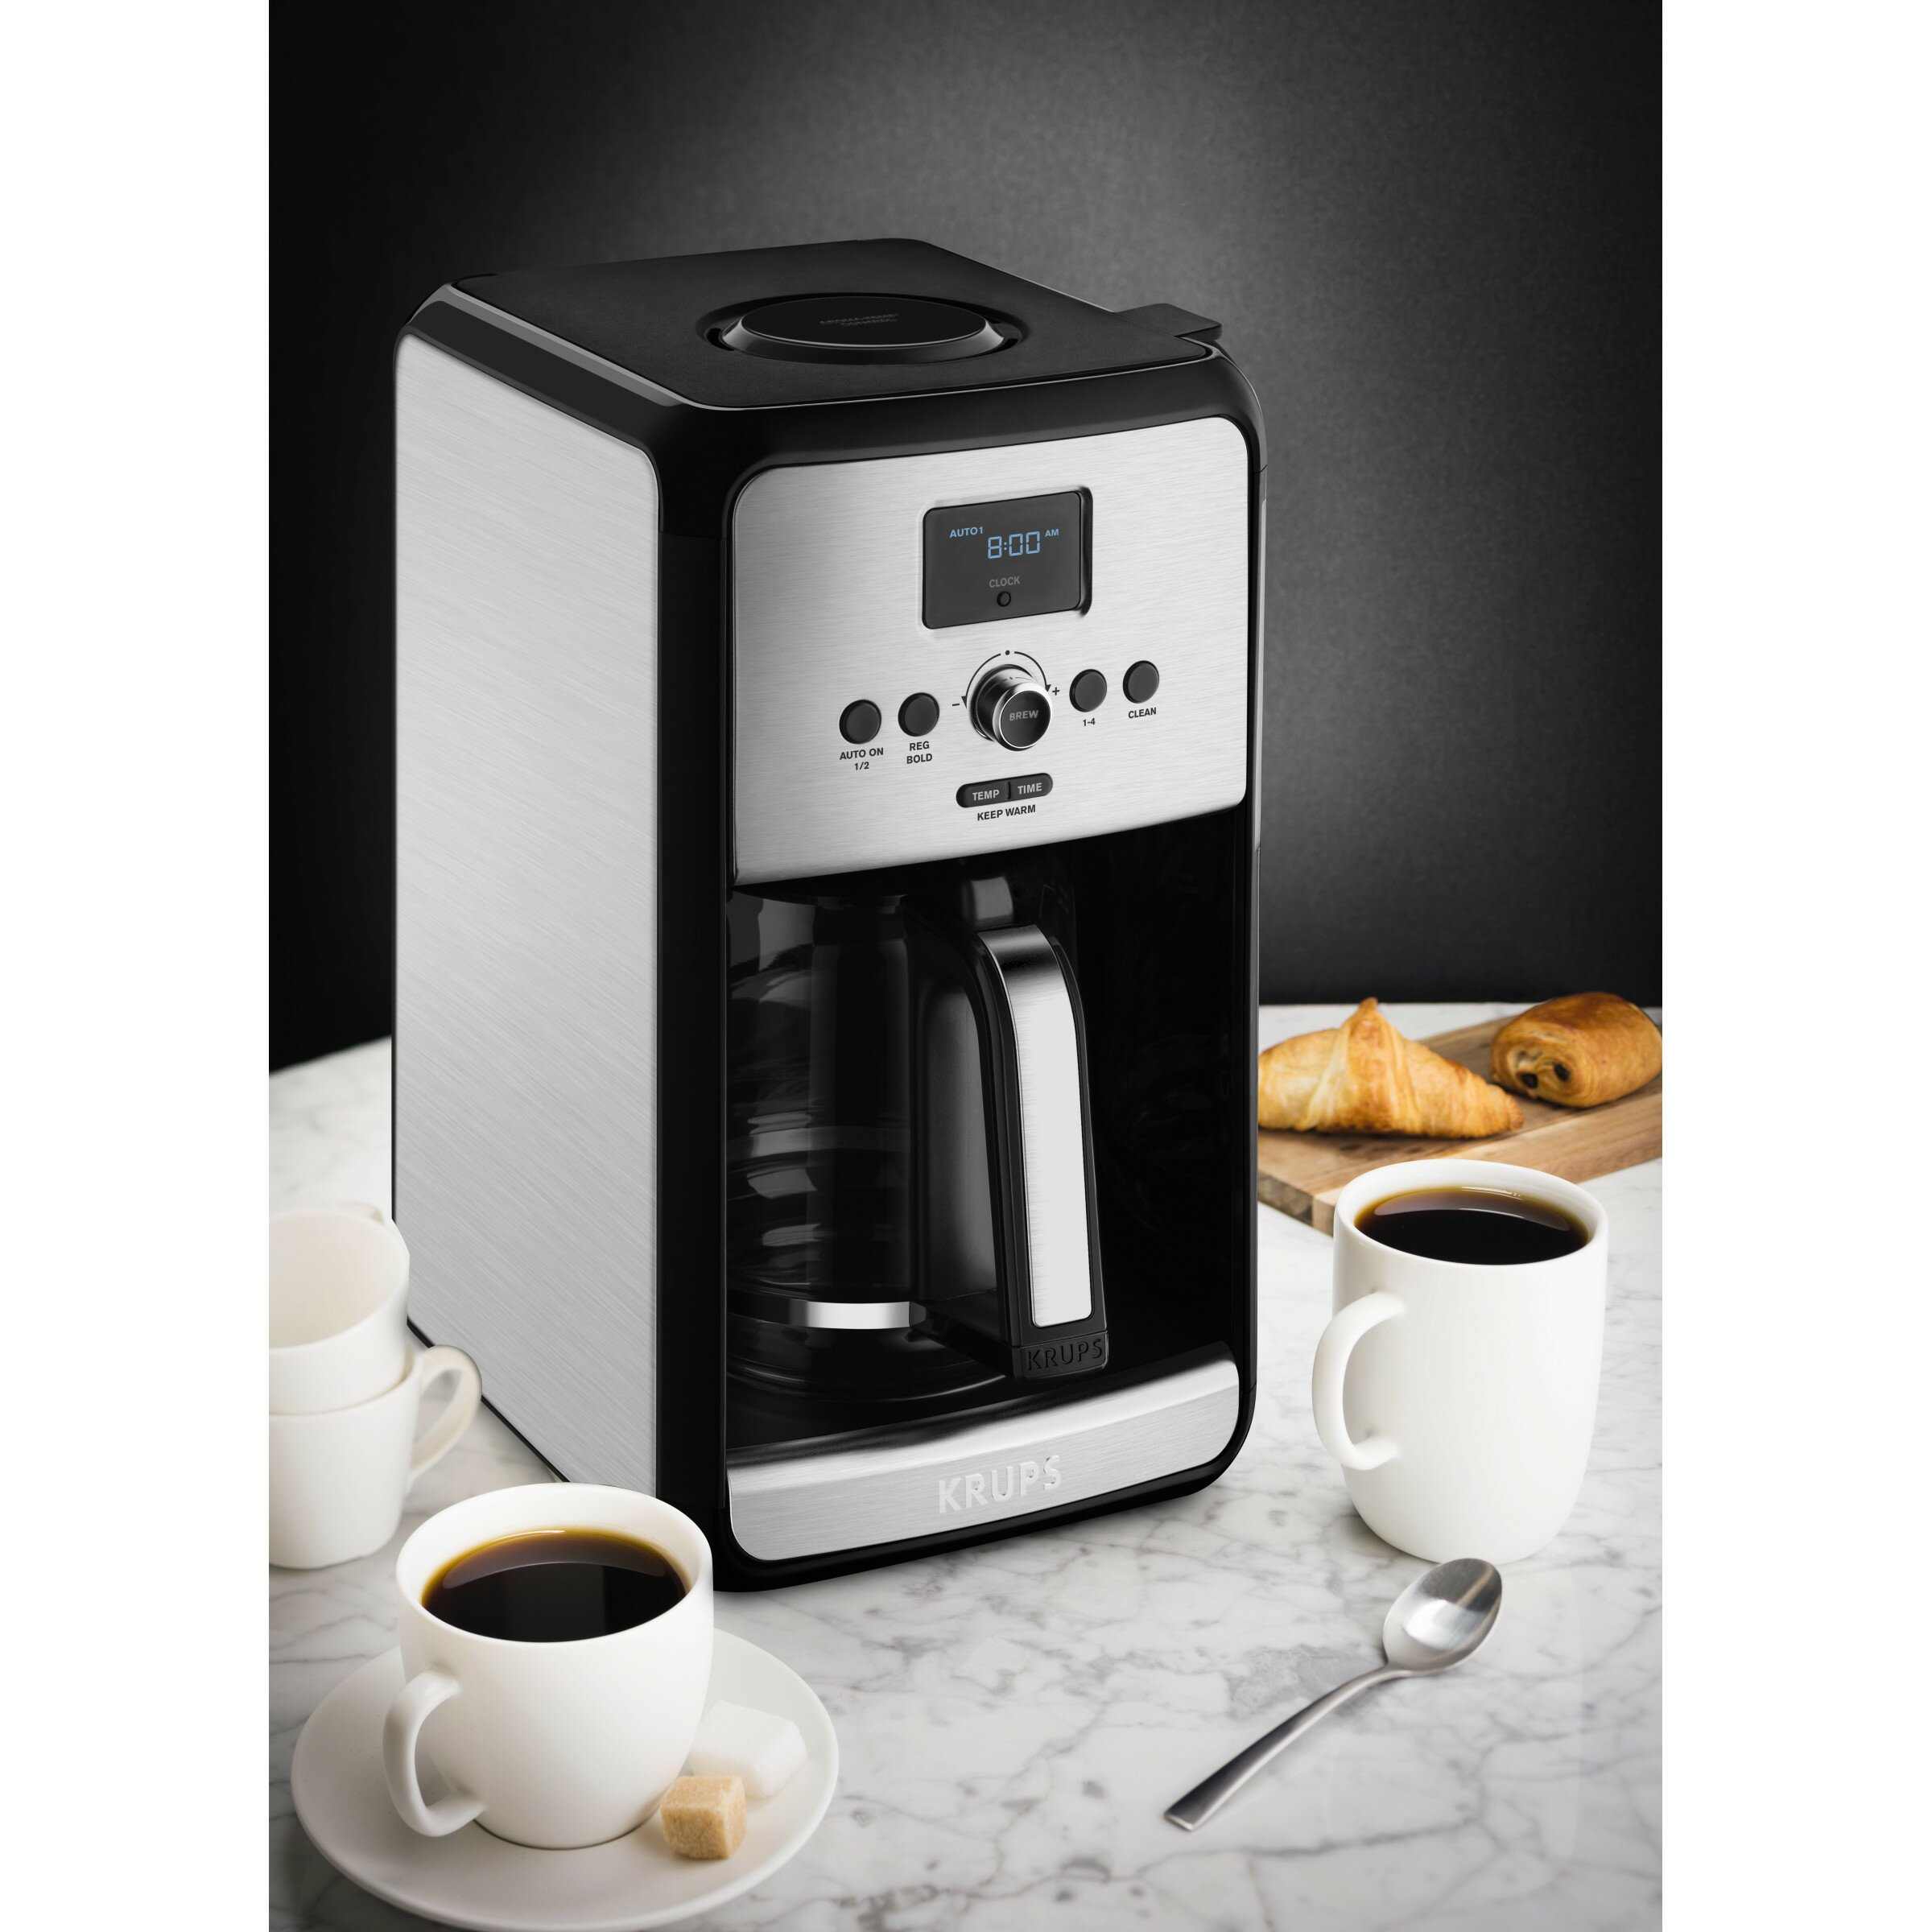 Programmable Filter Coffee Maker : Krups Savoy Programmable Filter Stainless Steel Coffee Maker & Reviews Wayfair